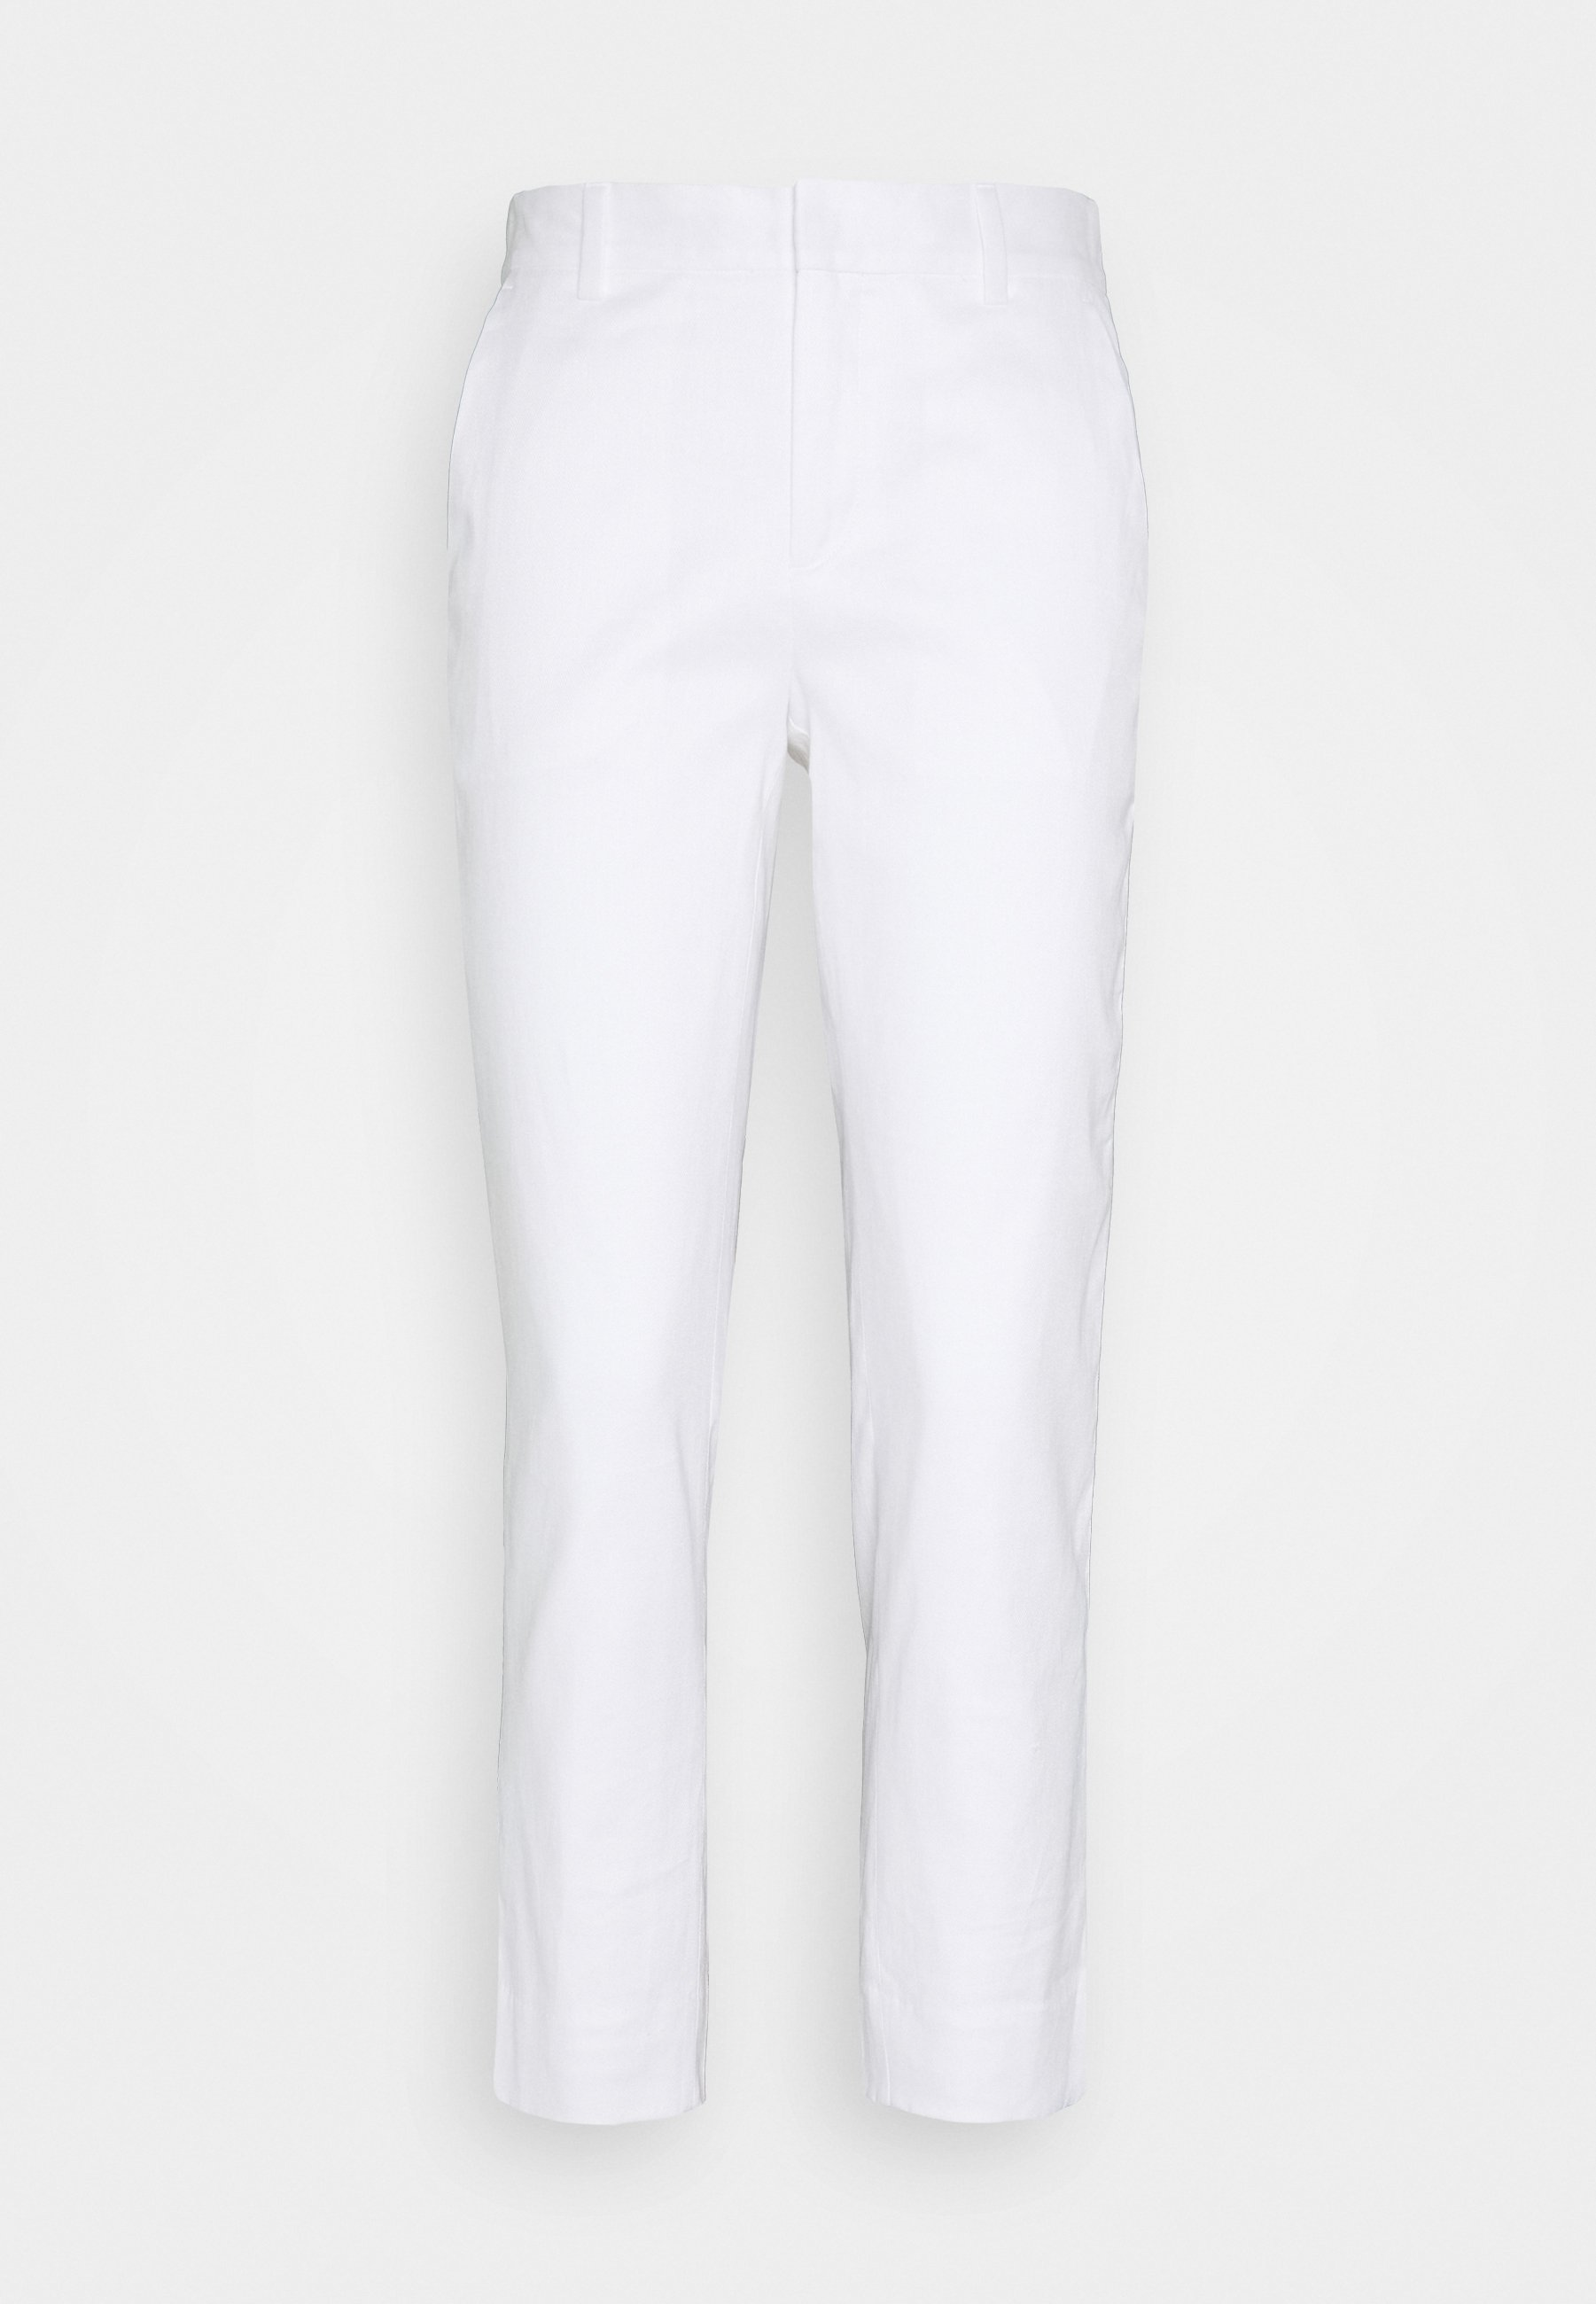 Best Place New Fashion Style Of Women's Clothing Banana Republic AVERY Trousers white 1HrCD6Ihv WLPOchXSD